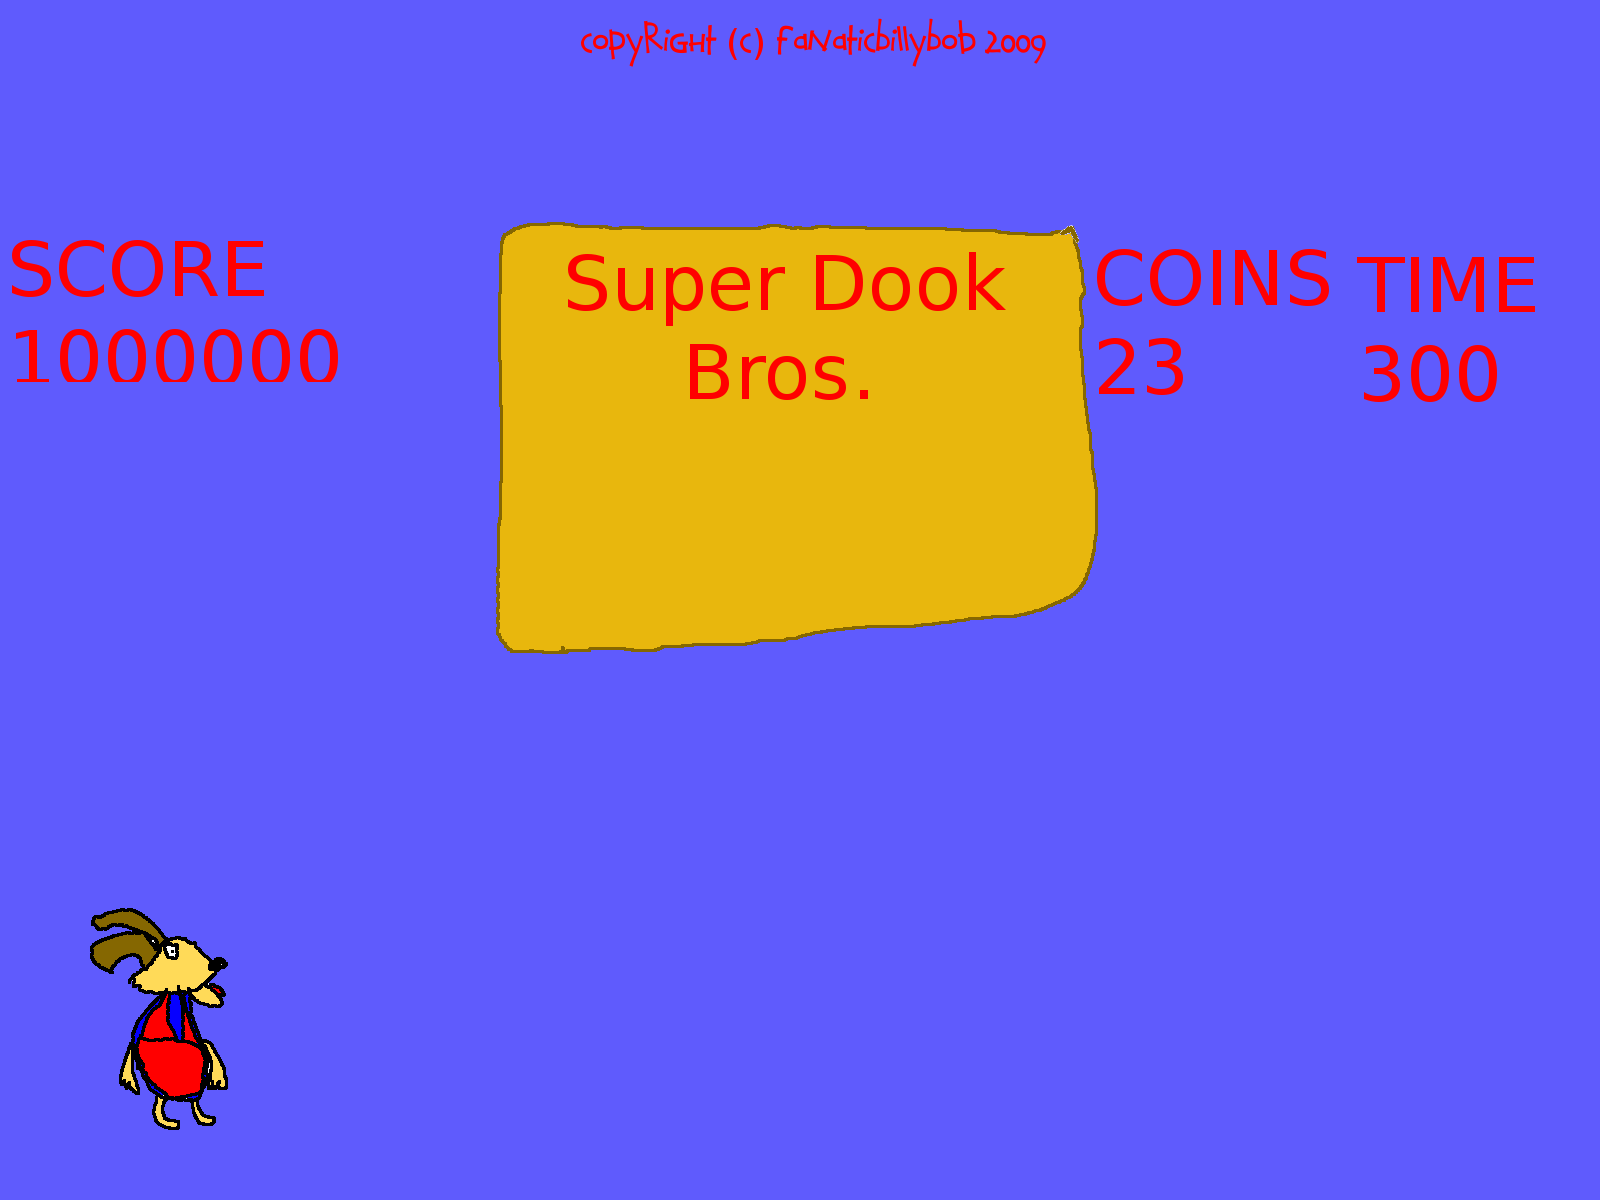 Super Dook Bros.